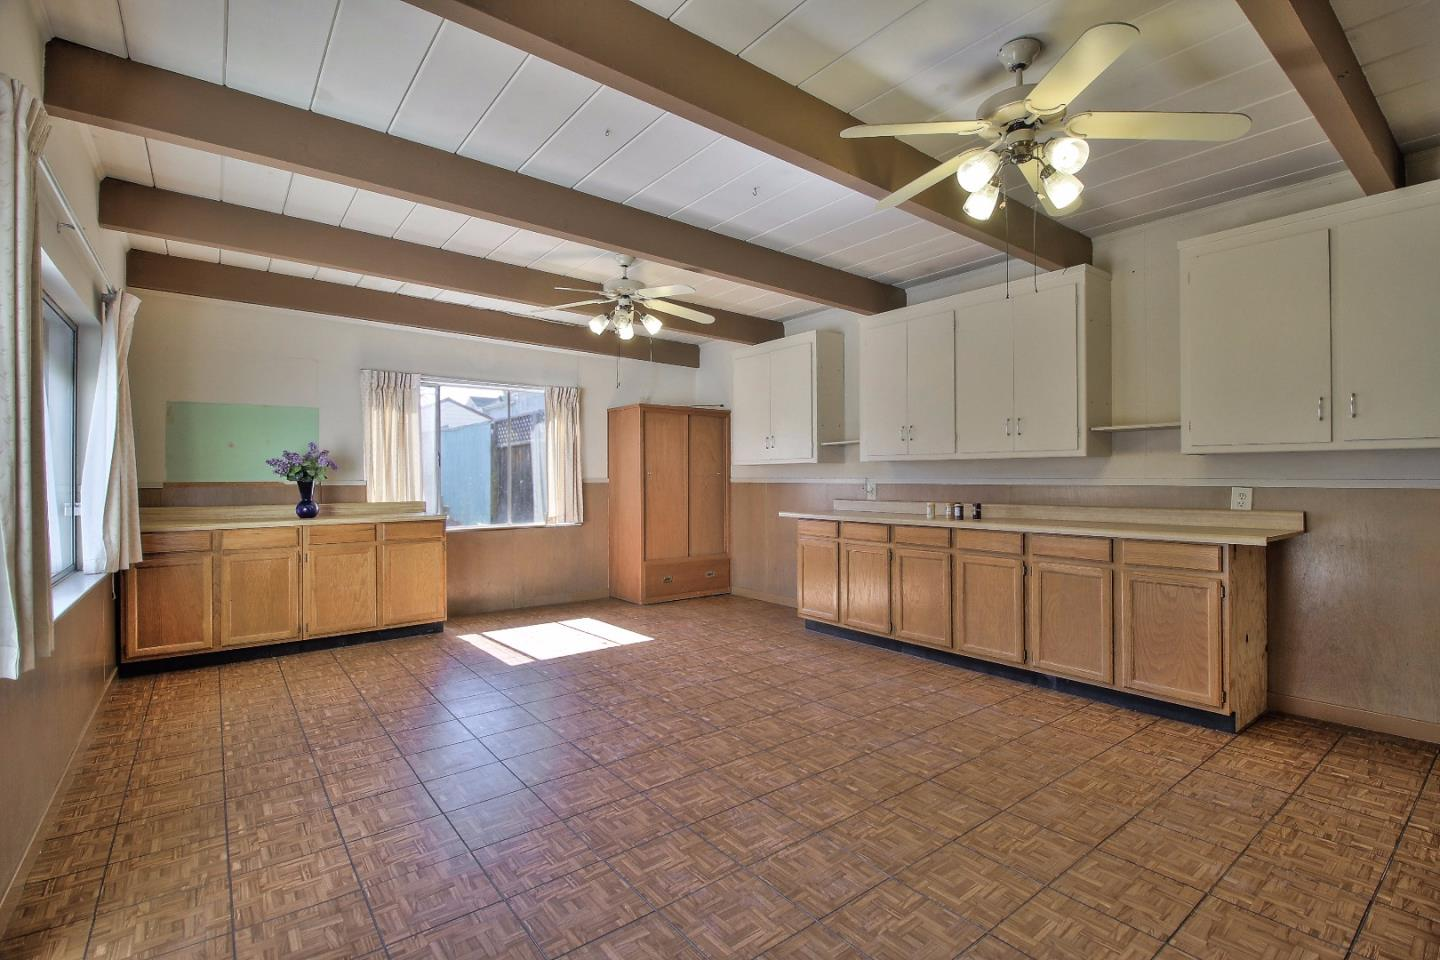 Additional photo for property listing at 514 S Humboldt St  SAN MATEO, CALIFORNIA 94402